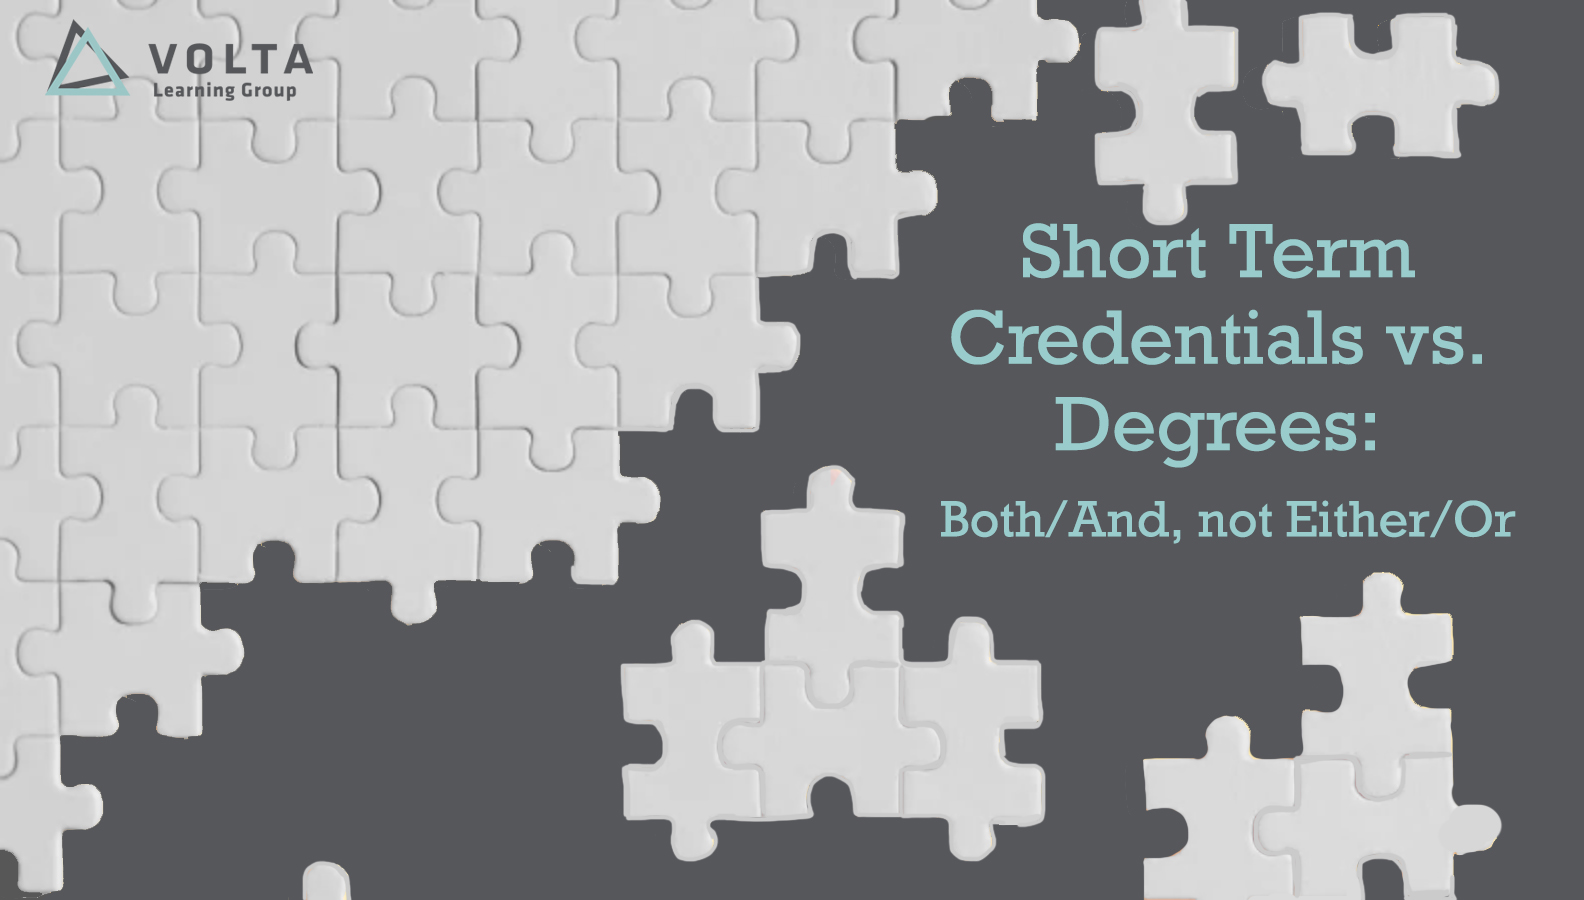 SHORT TERM CREDENTIALS VS. DEGREES:  BOTH/AND, NOT EITHER/OR